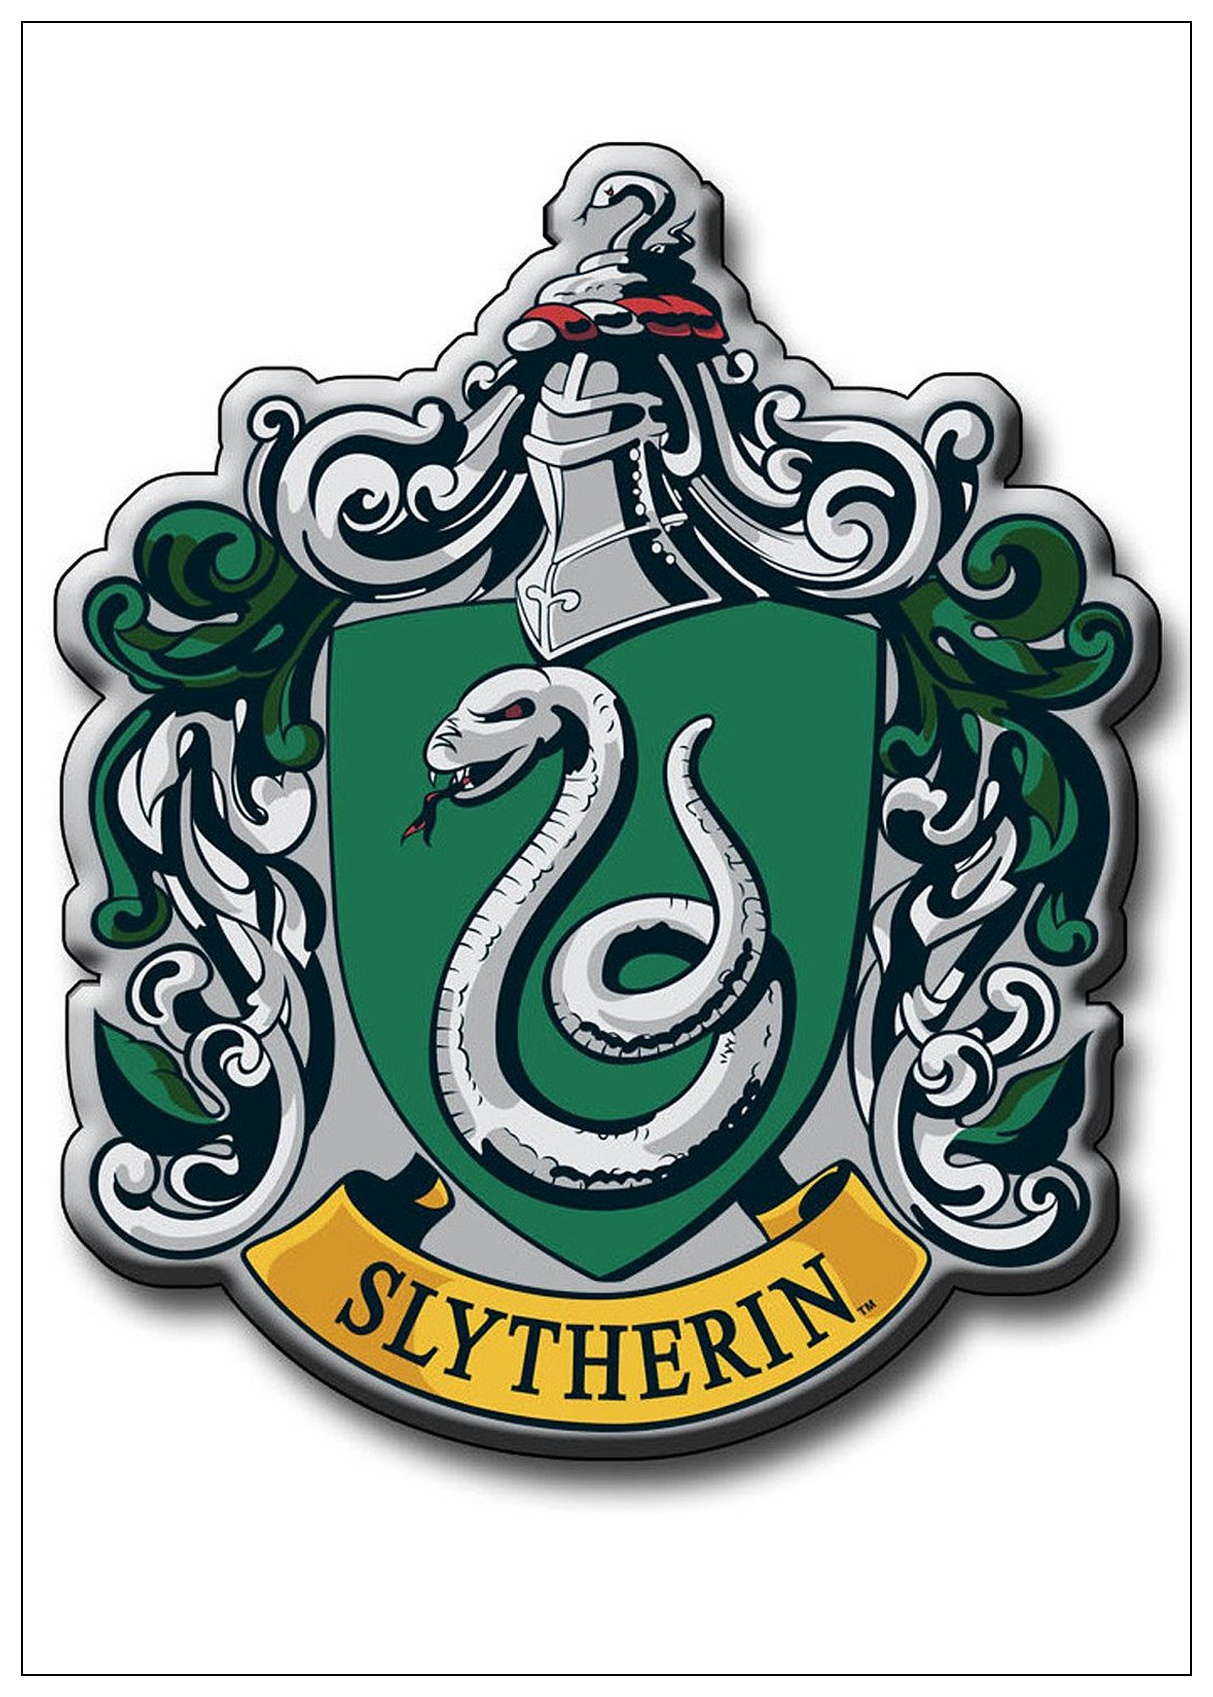 Harry Potter Wall Stickers Poster 4 Magic College Wallpaper - Slytherin Crest Harry Potter , HD Wallpaper & Backgrounds